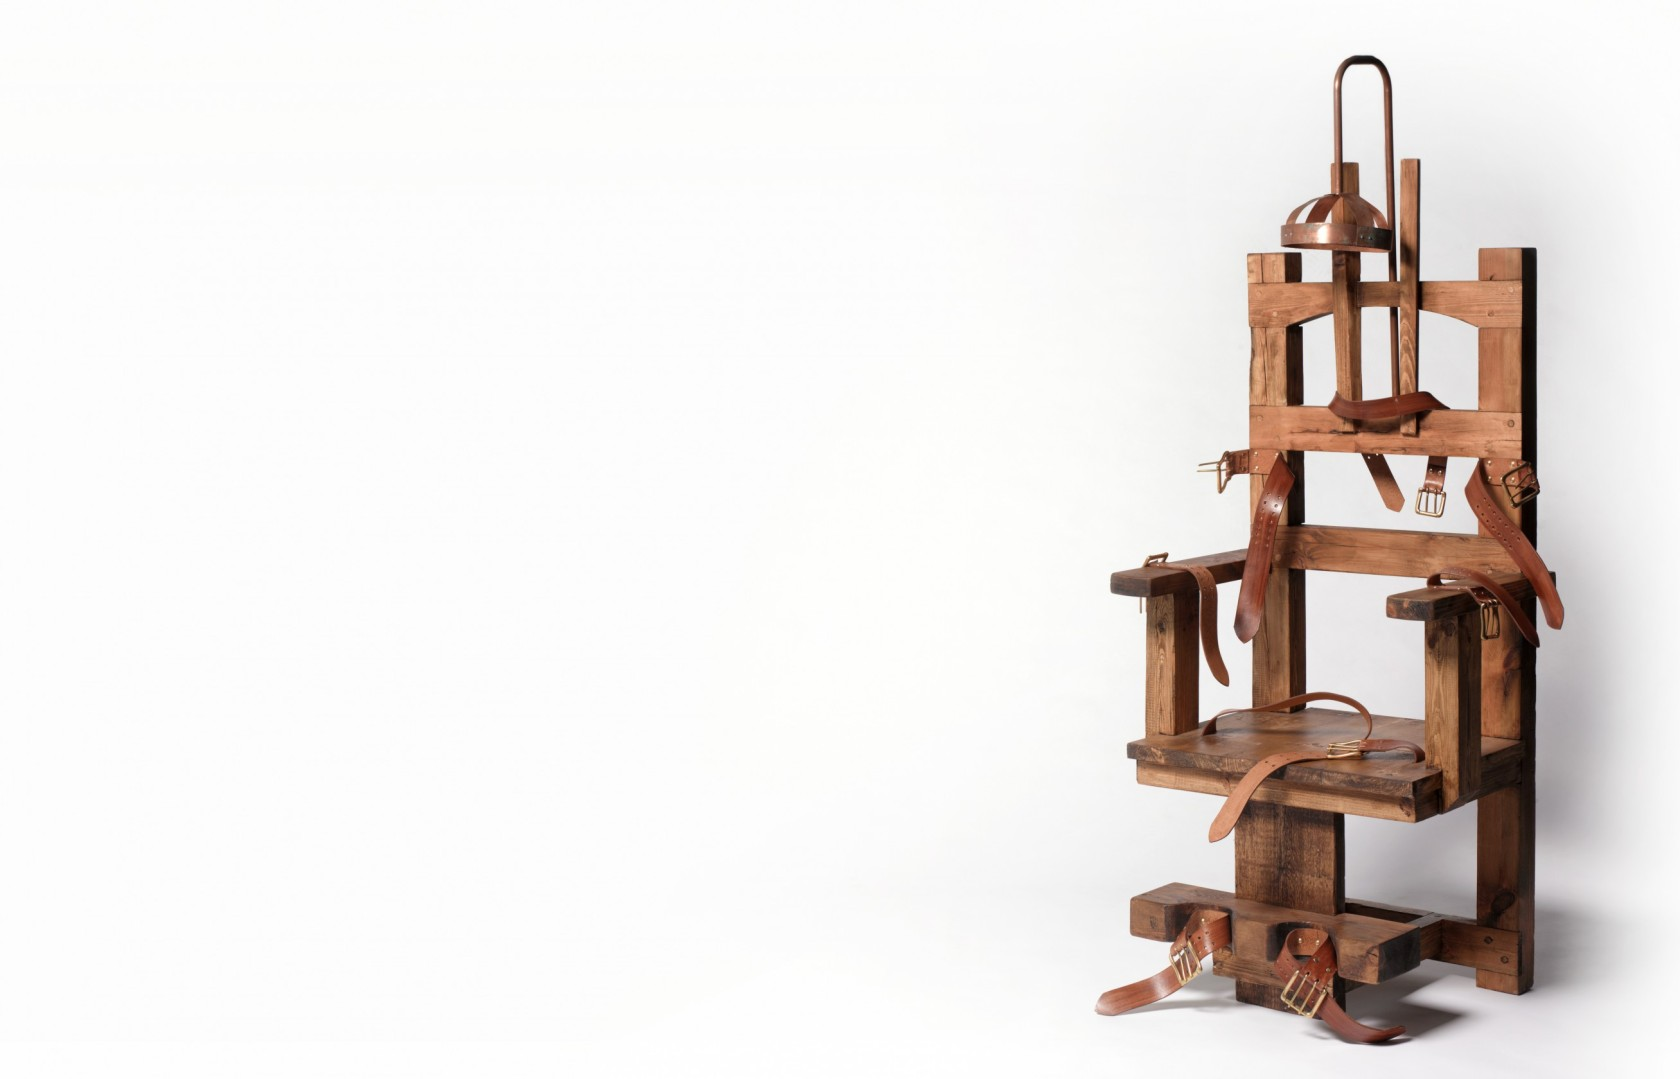 Electric chair with copy space